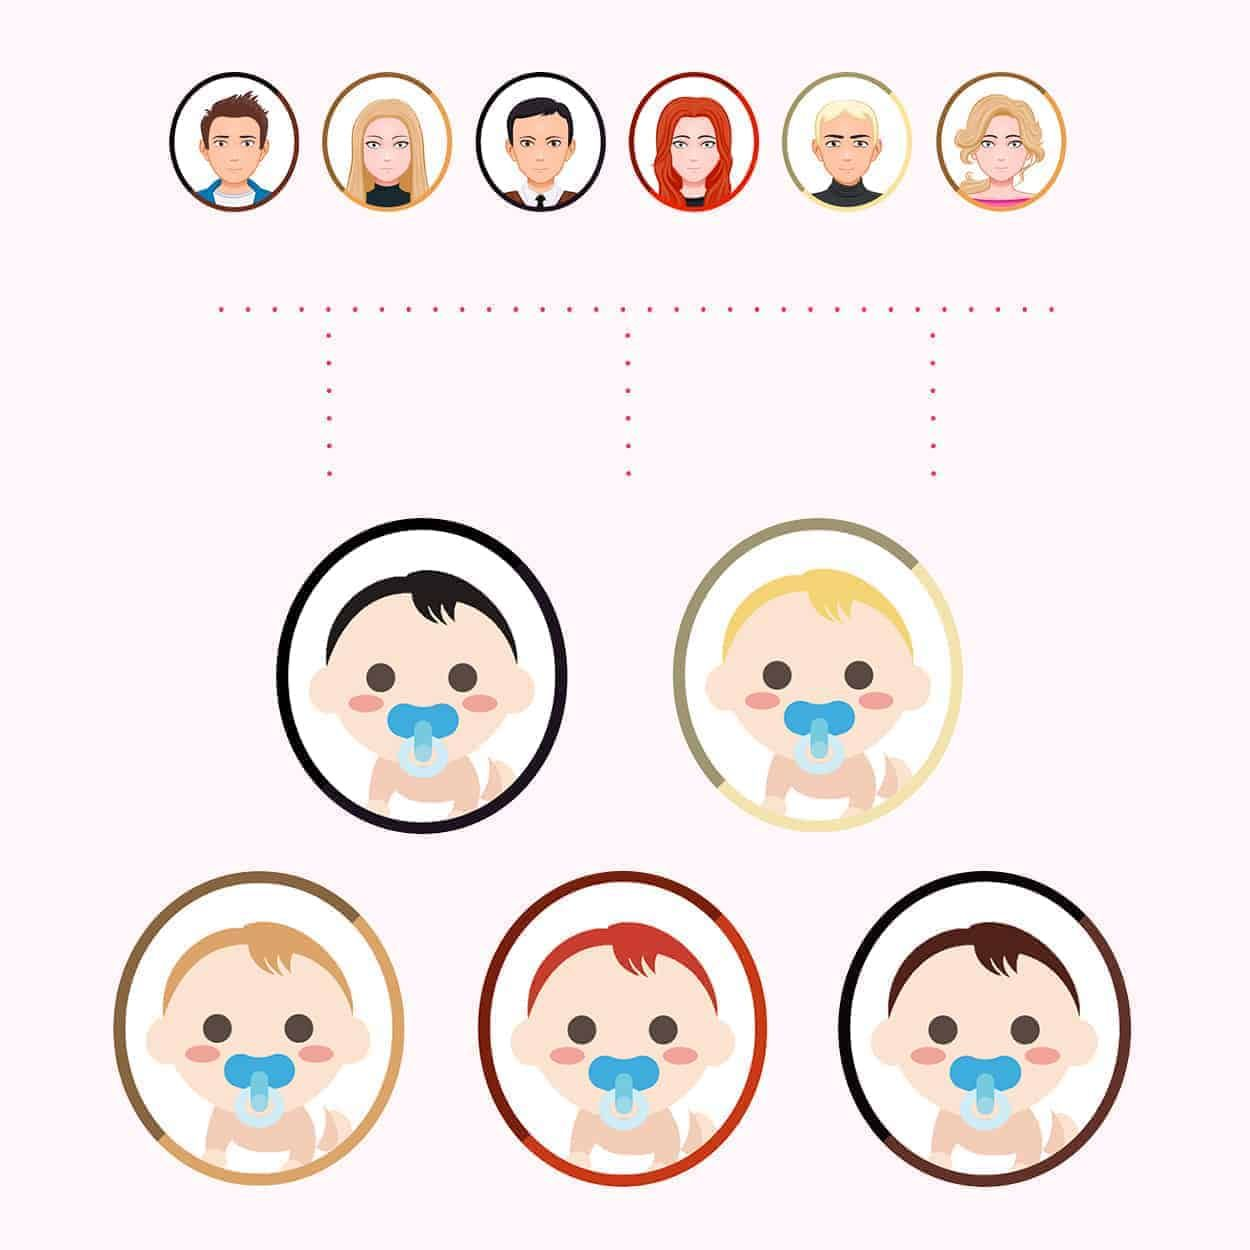 How To Determine What Color Hair Baby Will Have In 2020 Baby Eye Color Predictor Eye Color Predictor Baby Eyes